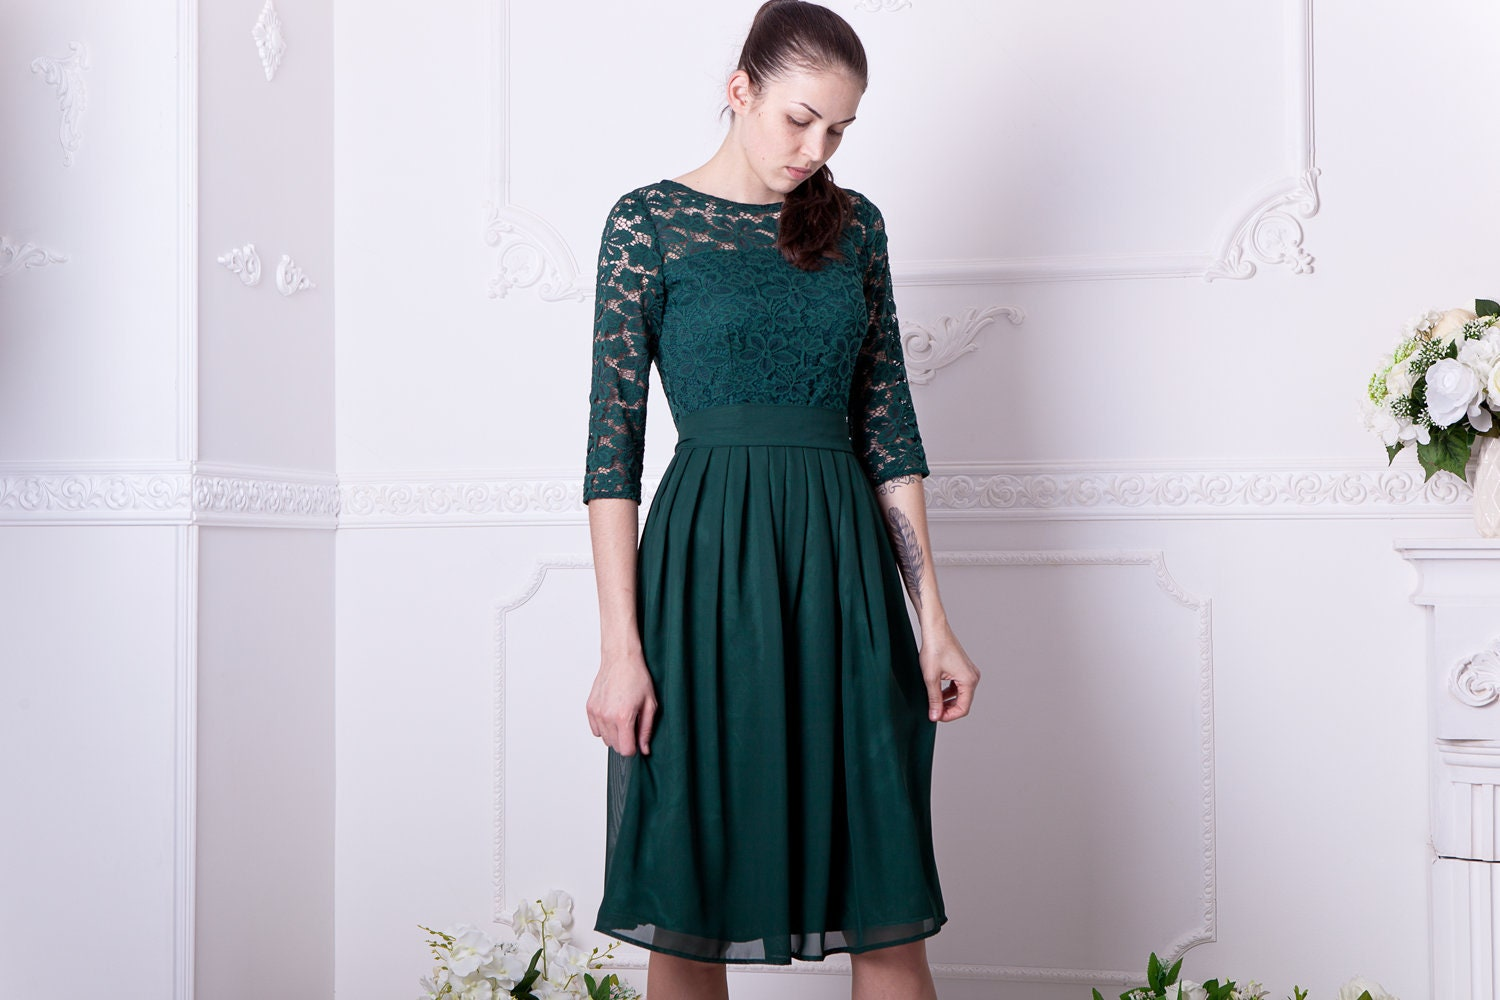 3f4ad2e5ef5 Short dark green bridesmaid dress with sleeves. Knee length